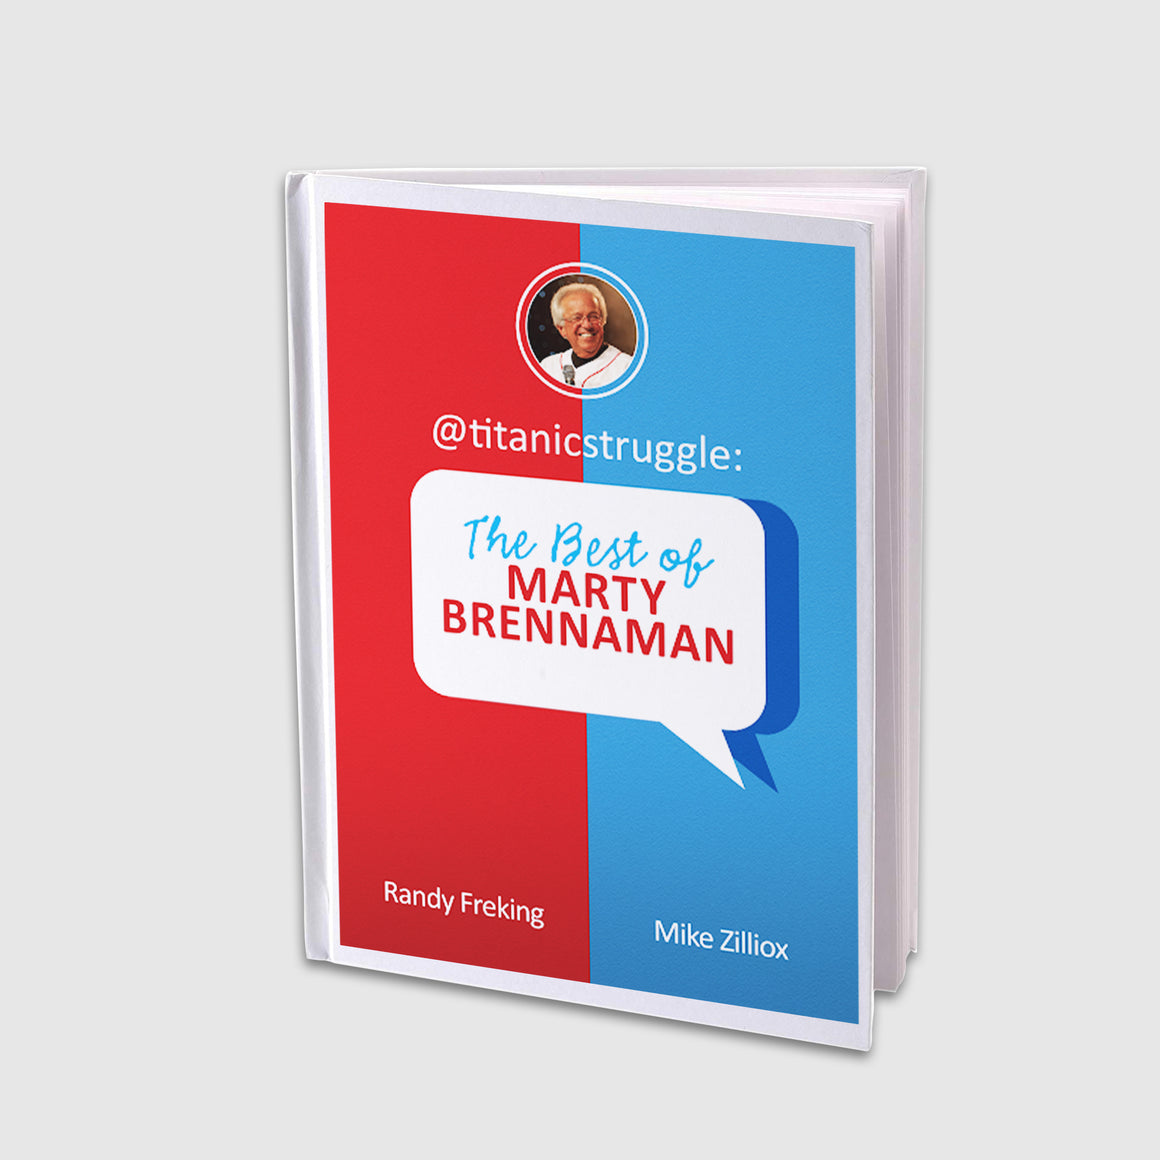 @titanicstruggle: The Best of Marty Brennaman Book cover